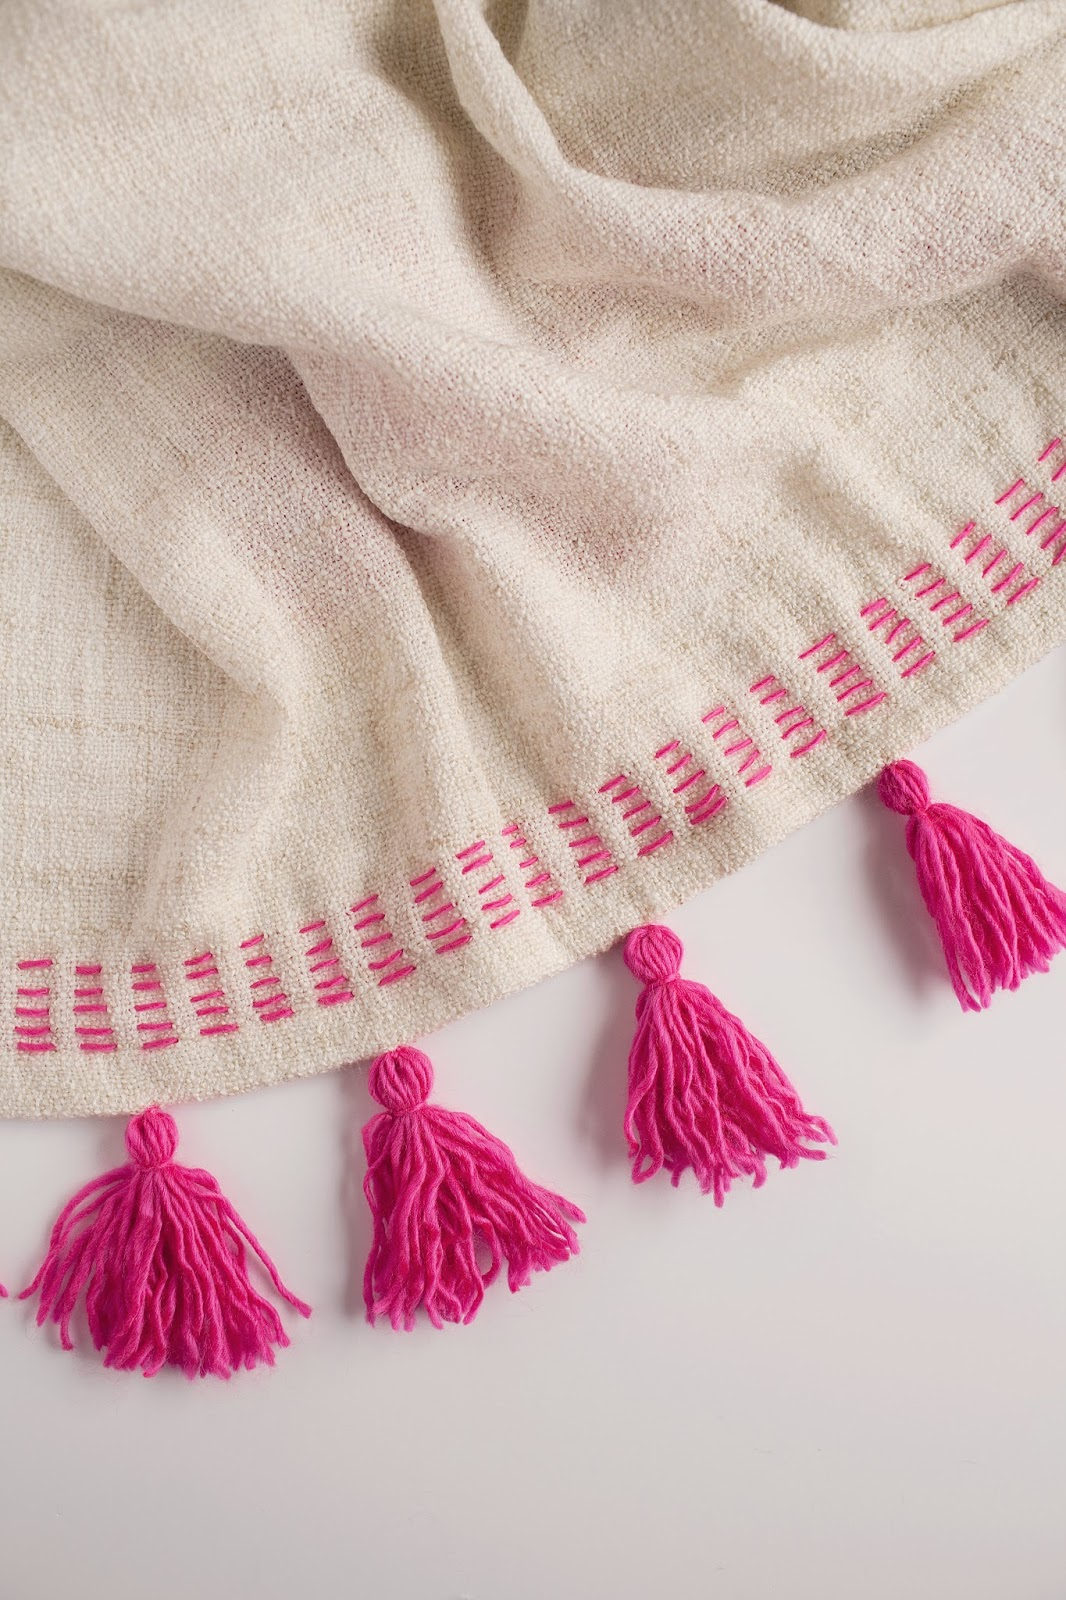 Tell diy tassel blanket tell love and partytell love - Quoi faire avec des pompons ...